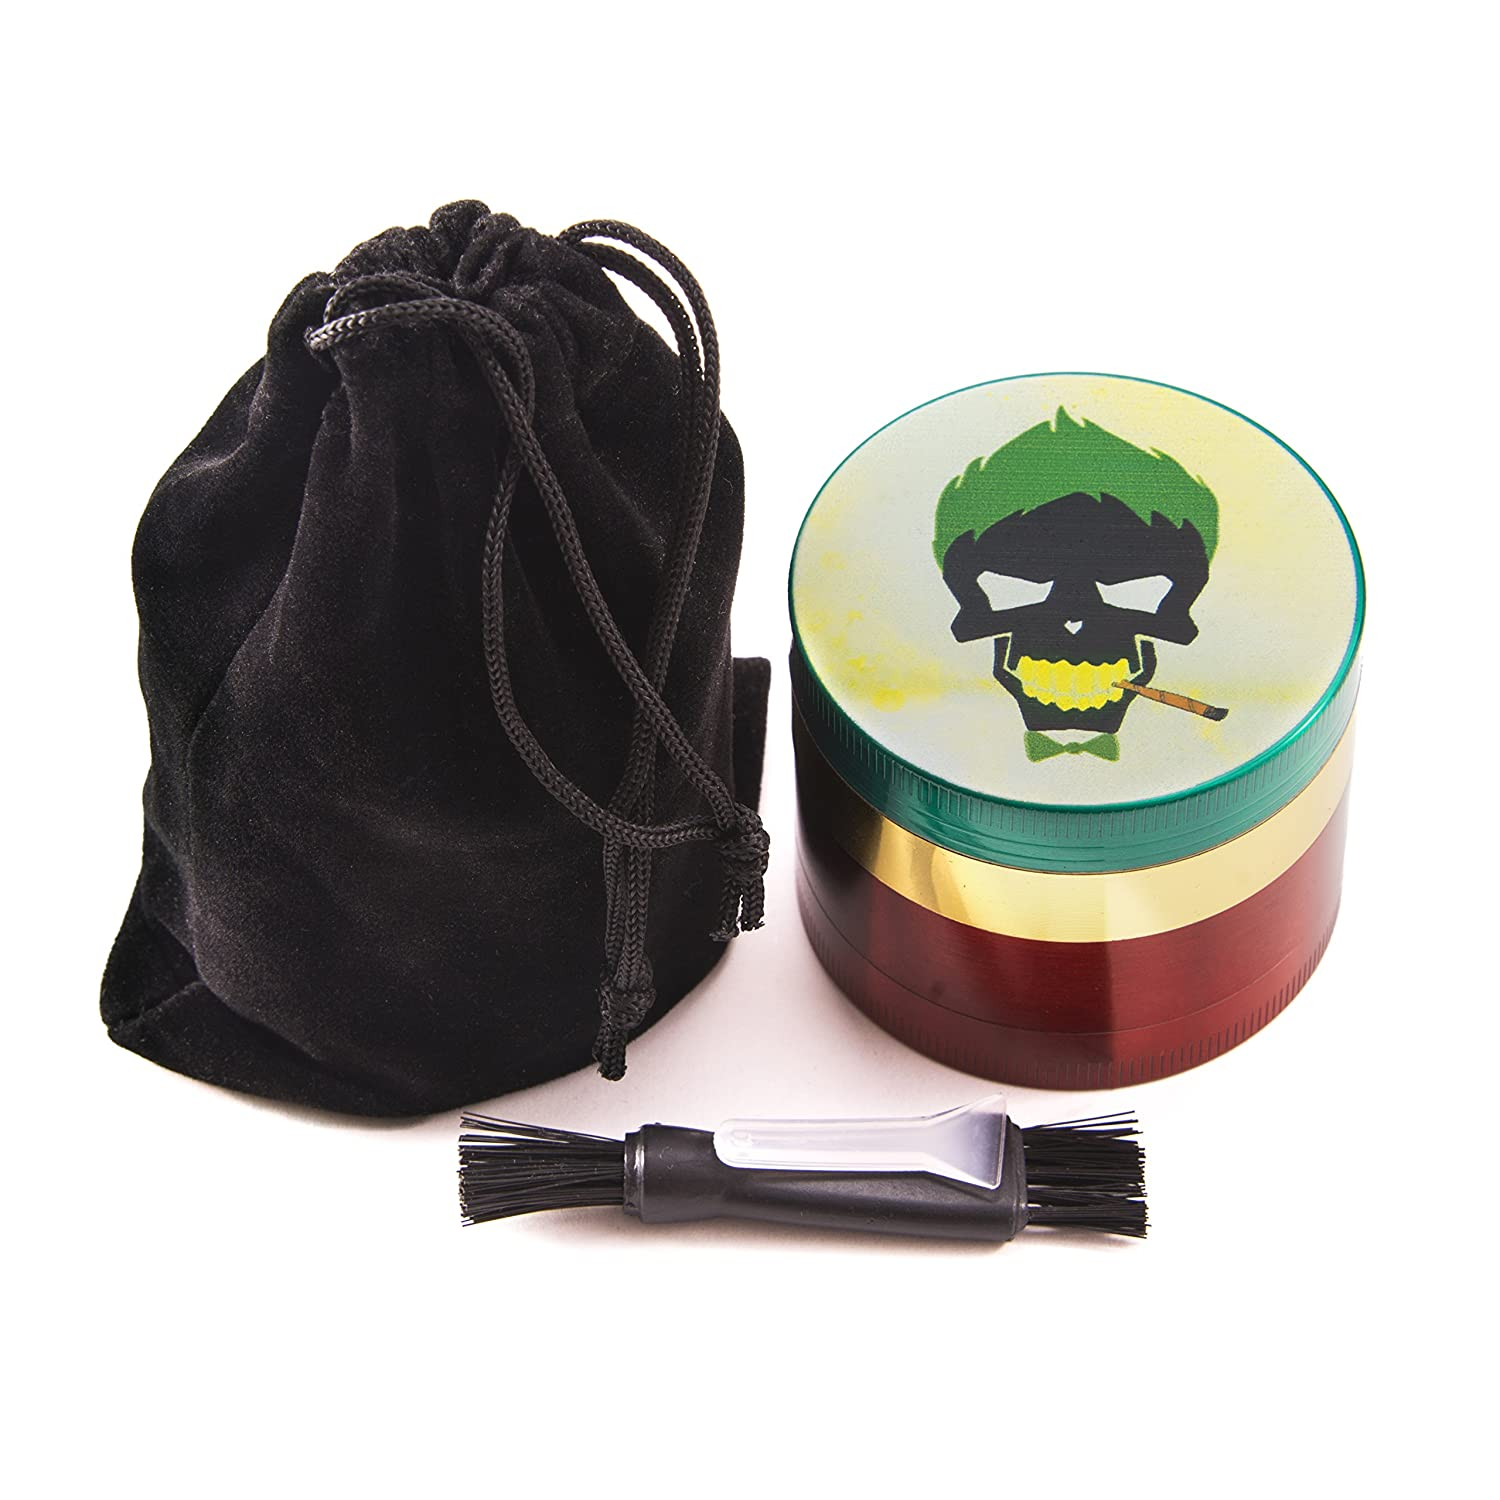 4 Piece Metal Grinder for Weed with Keef Catcher - 2.1 Inch - Rasta Color - Includes Accessories